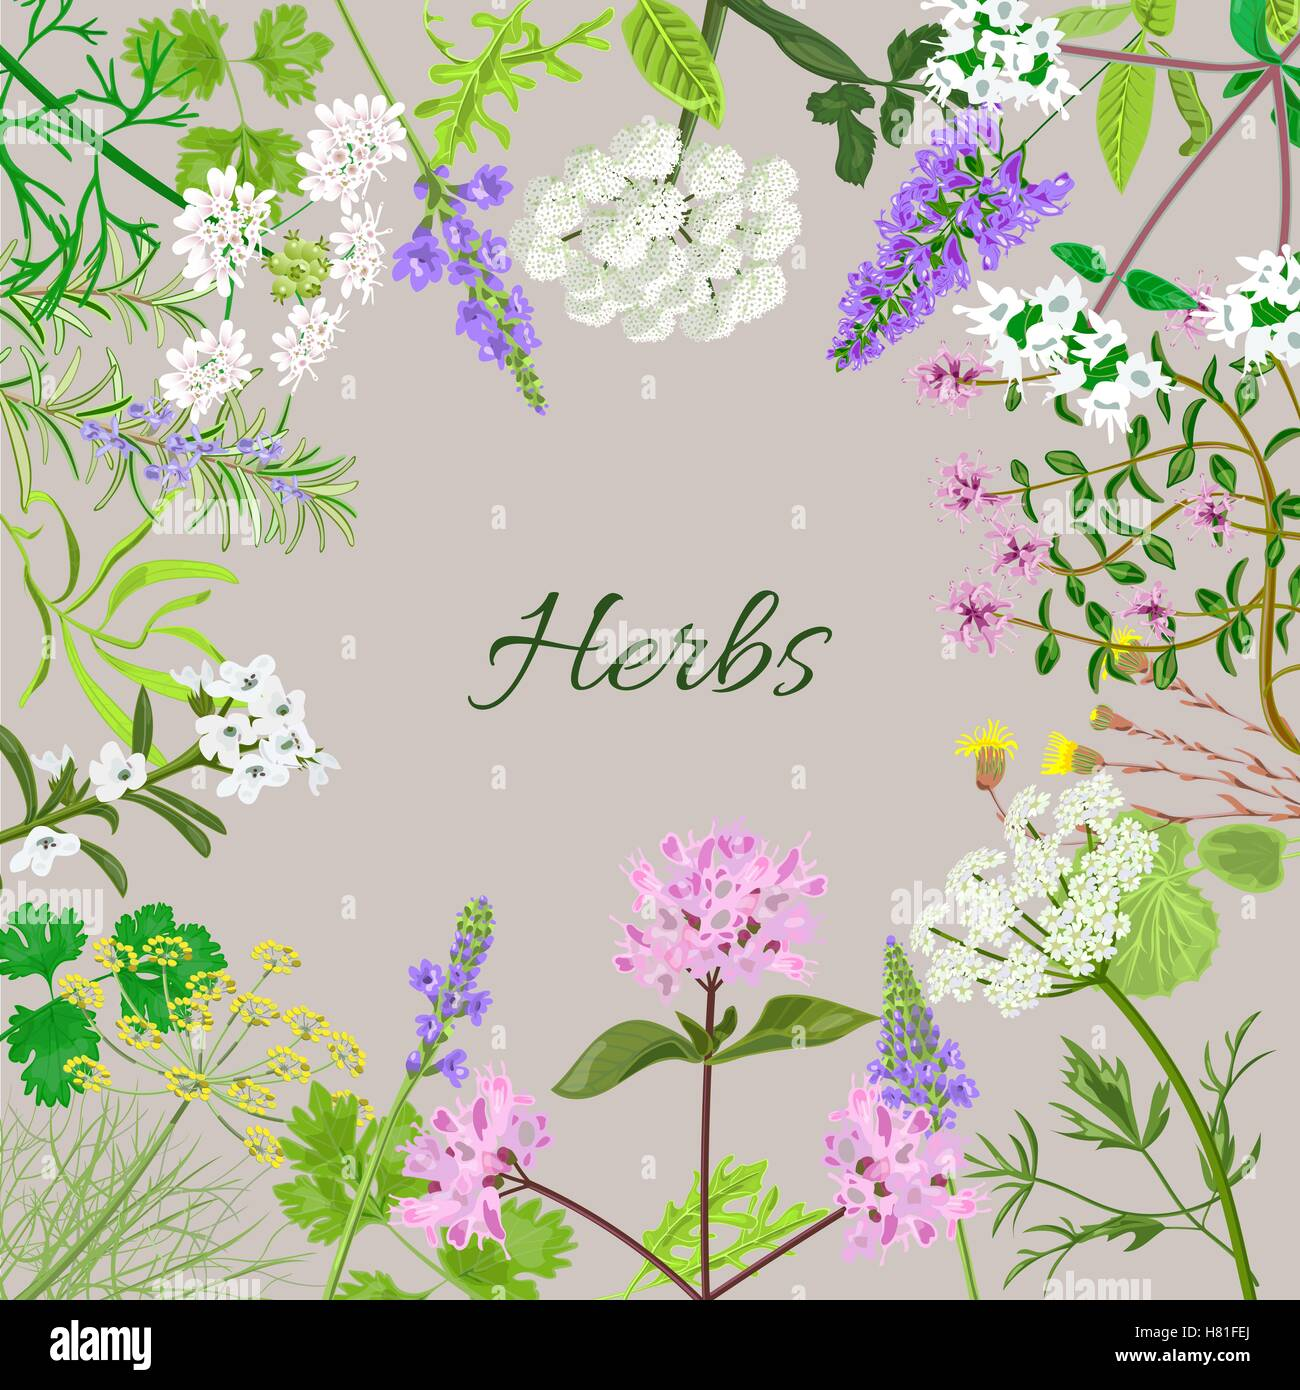 Vector card with herbal flowers. Salvia, angelica, oregano, rosemary, savory, verbena, anise, fennel, coltsfoot, - Stock Vector